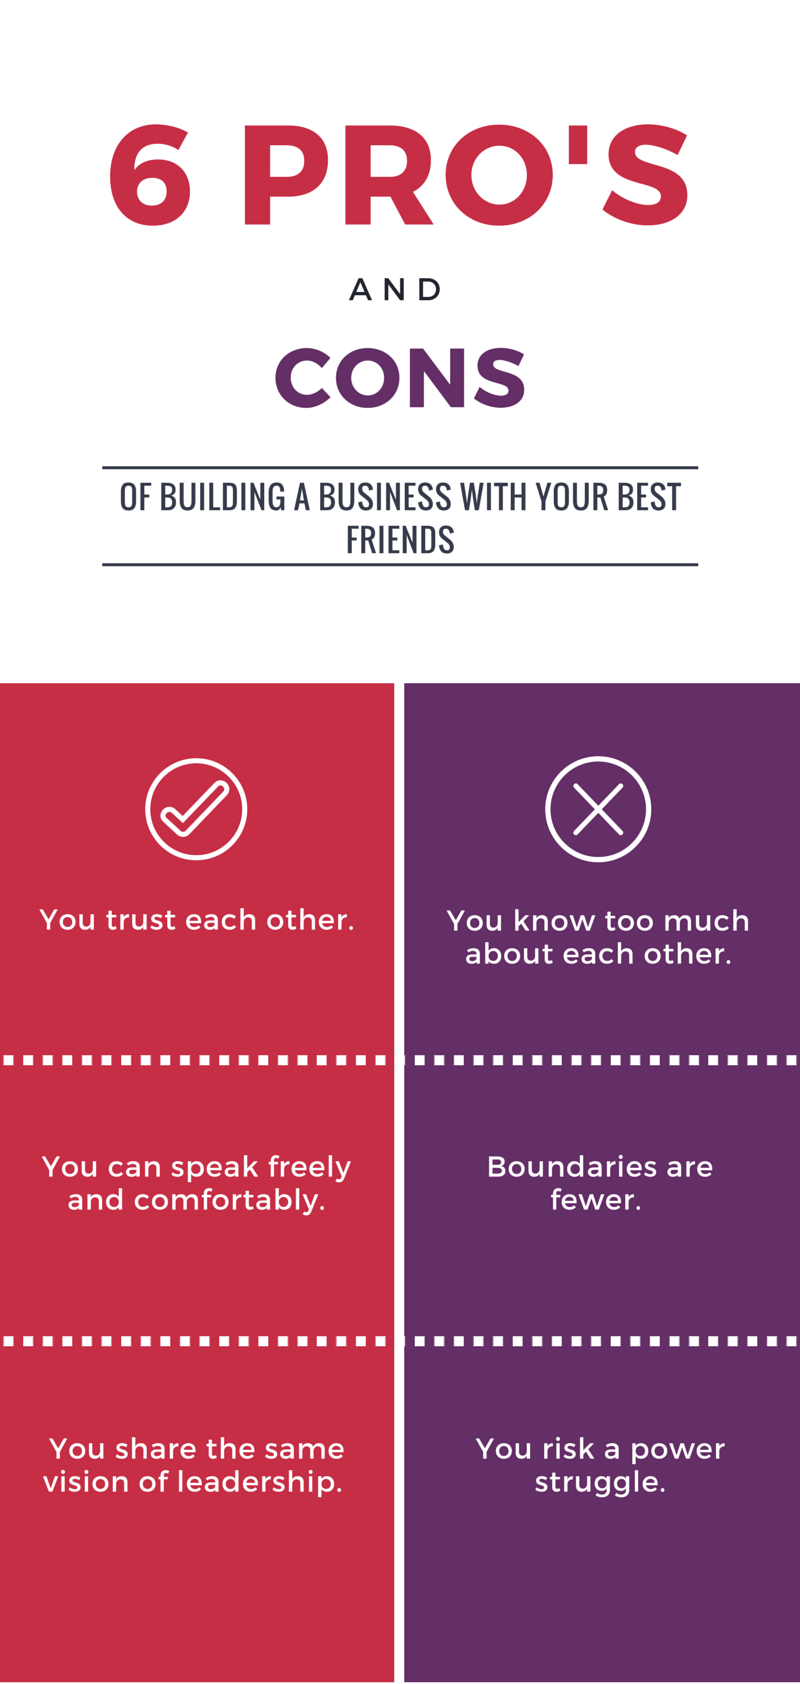 Should You Build A Business With Your Best Friends? 6 Pros And Cons |  Leadership quotes, Career planning, Business